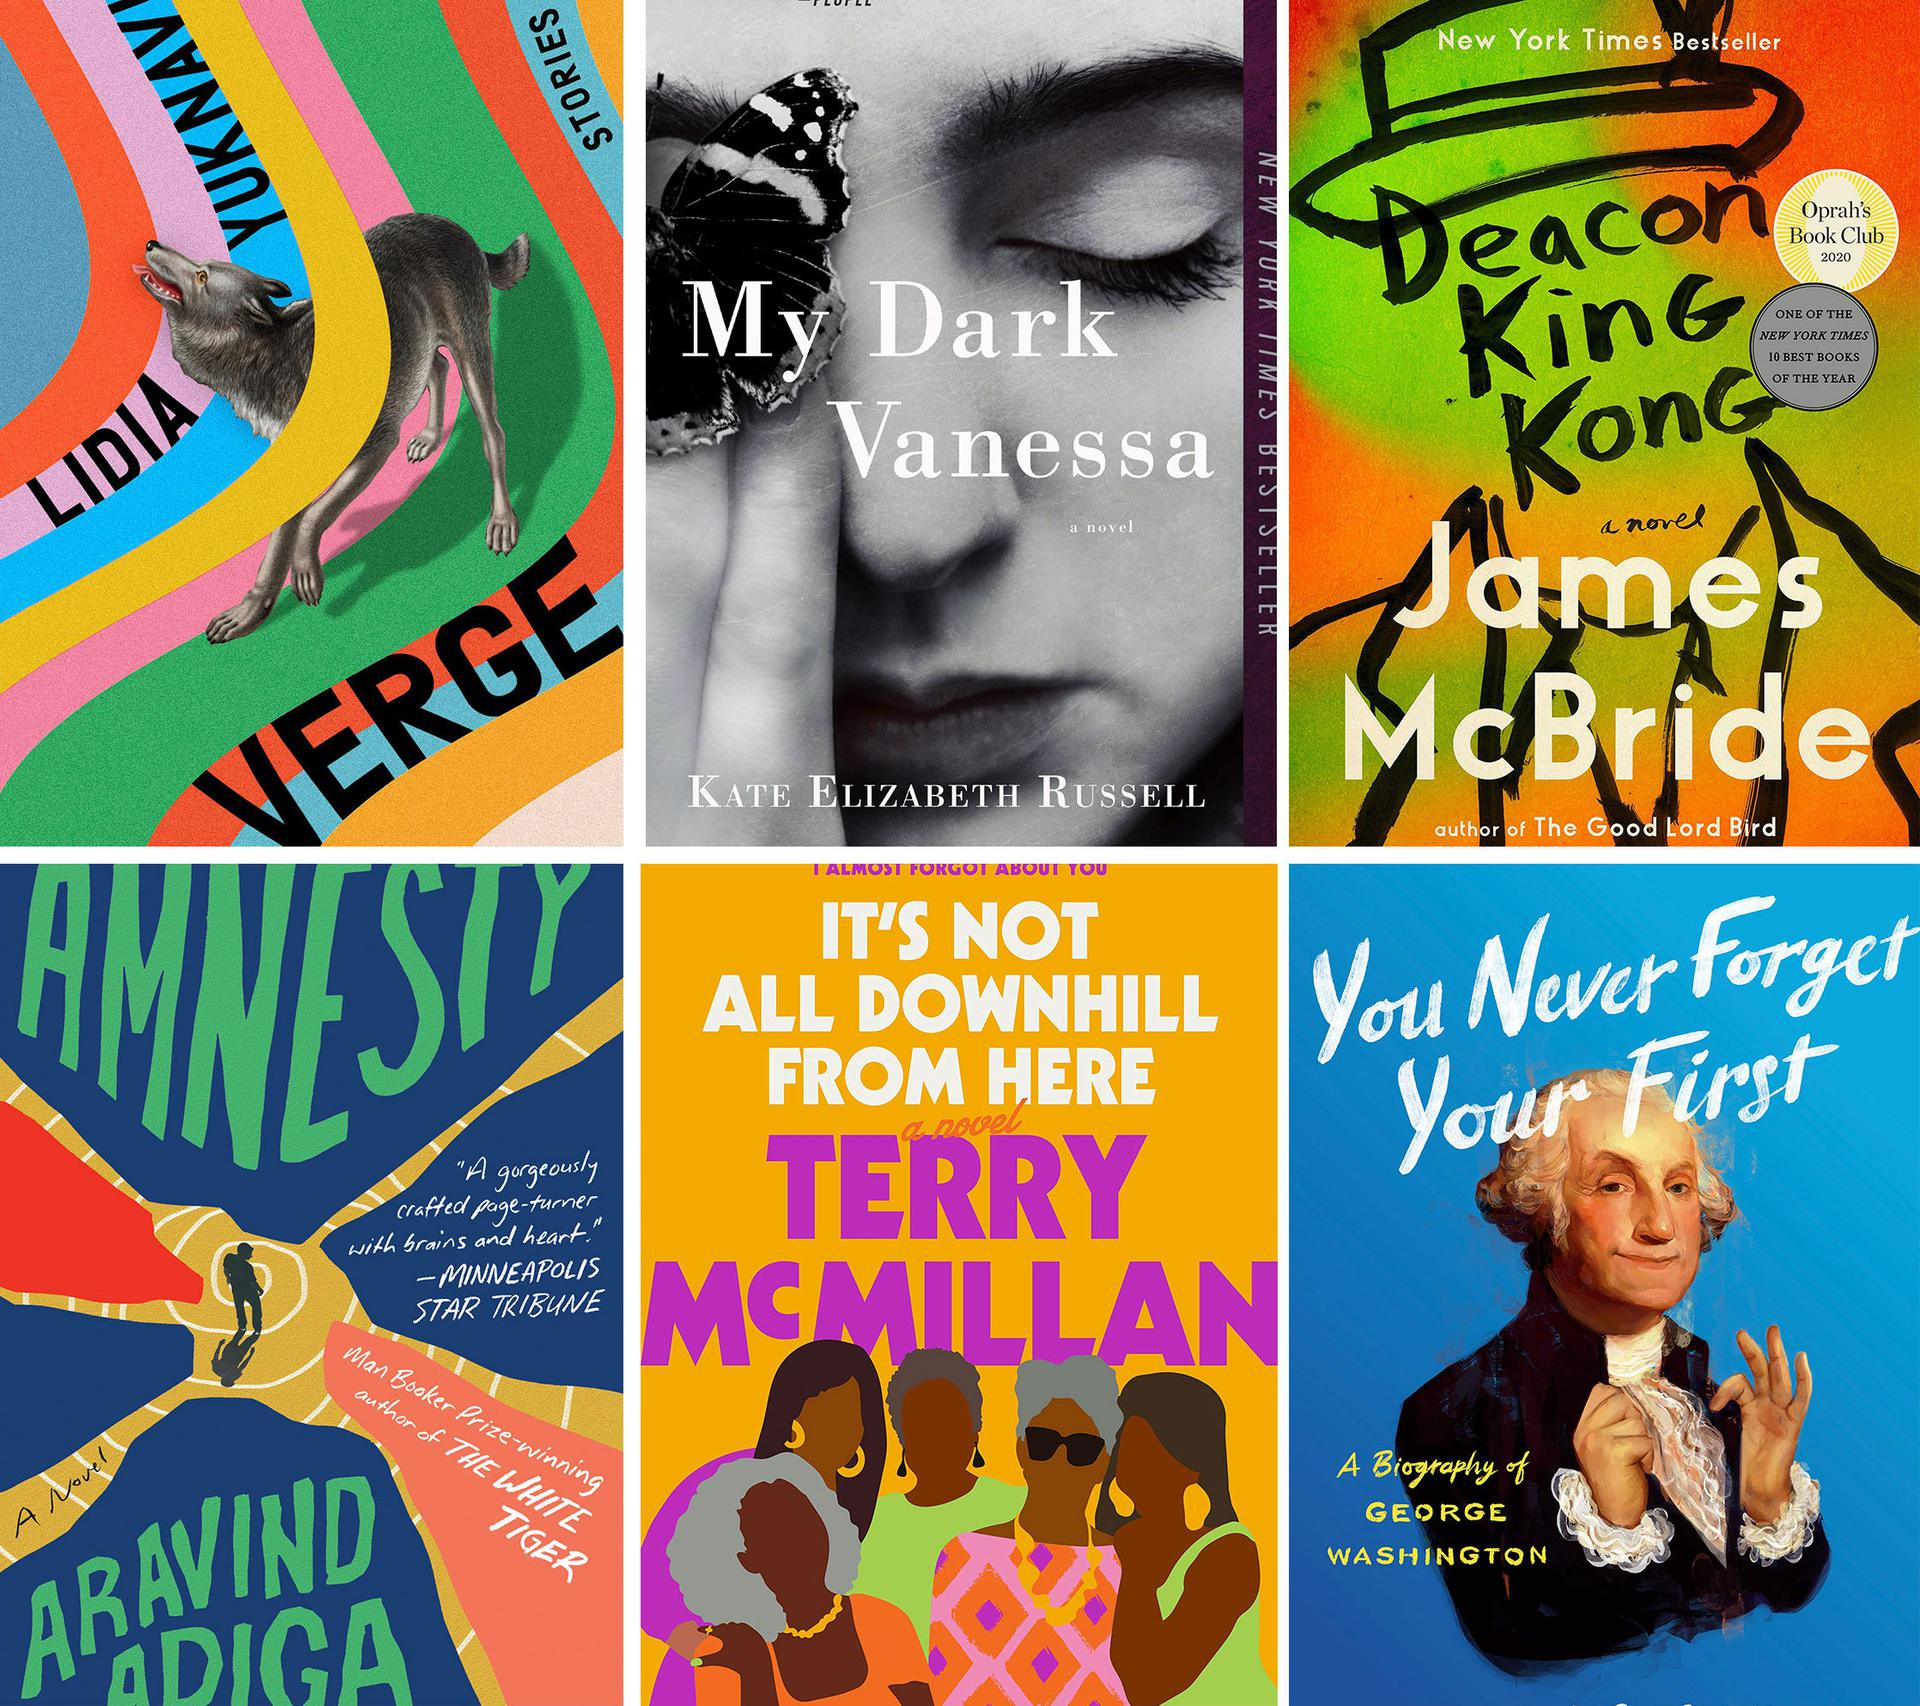 Grid of book covers: Verge by Lidia Yuknavitch, My Dark Vanessa by Kate Elizabeth Russell, Deacon King Kong by James McBride, Amnesty by Aravind Adiga, It's Not All Downhill From Here by Terry McMillan, You Never Forget Your First by Alexis Coe